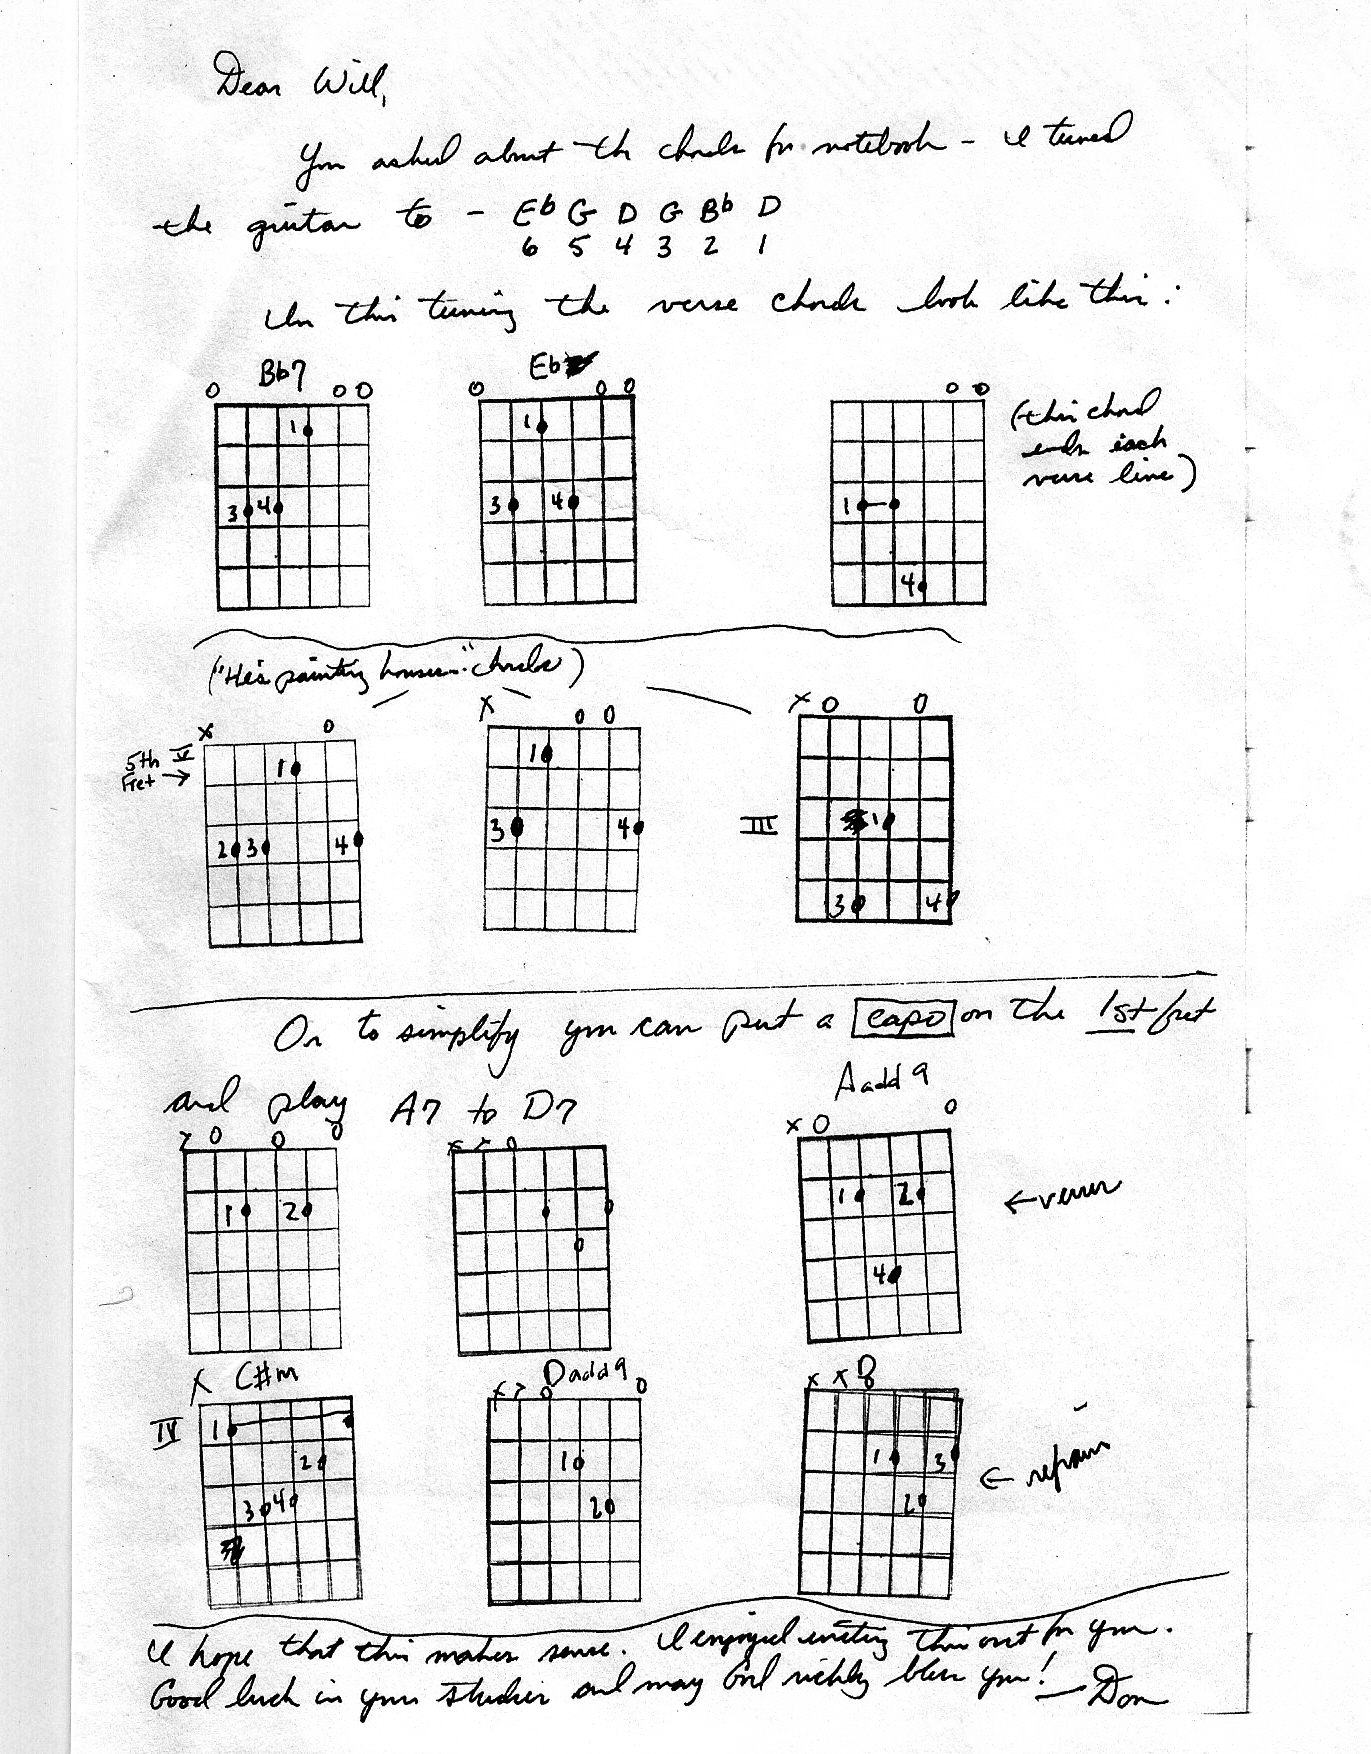 Guitar Sheet Music For Song Of Storms - mumford sons quot after the storm guitar tab in g major ...